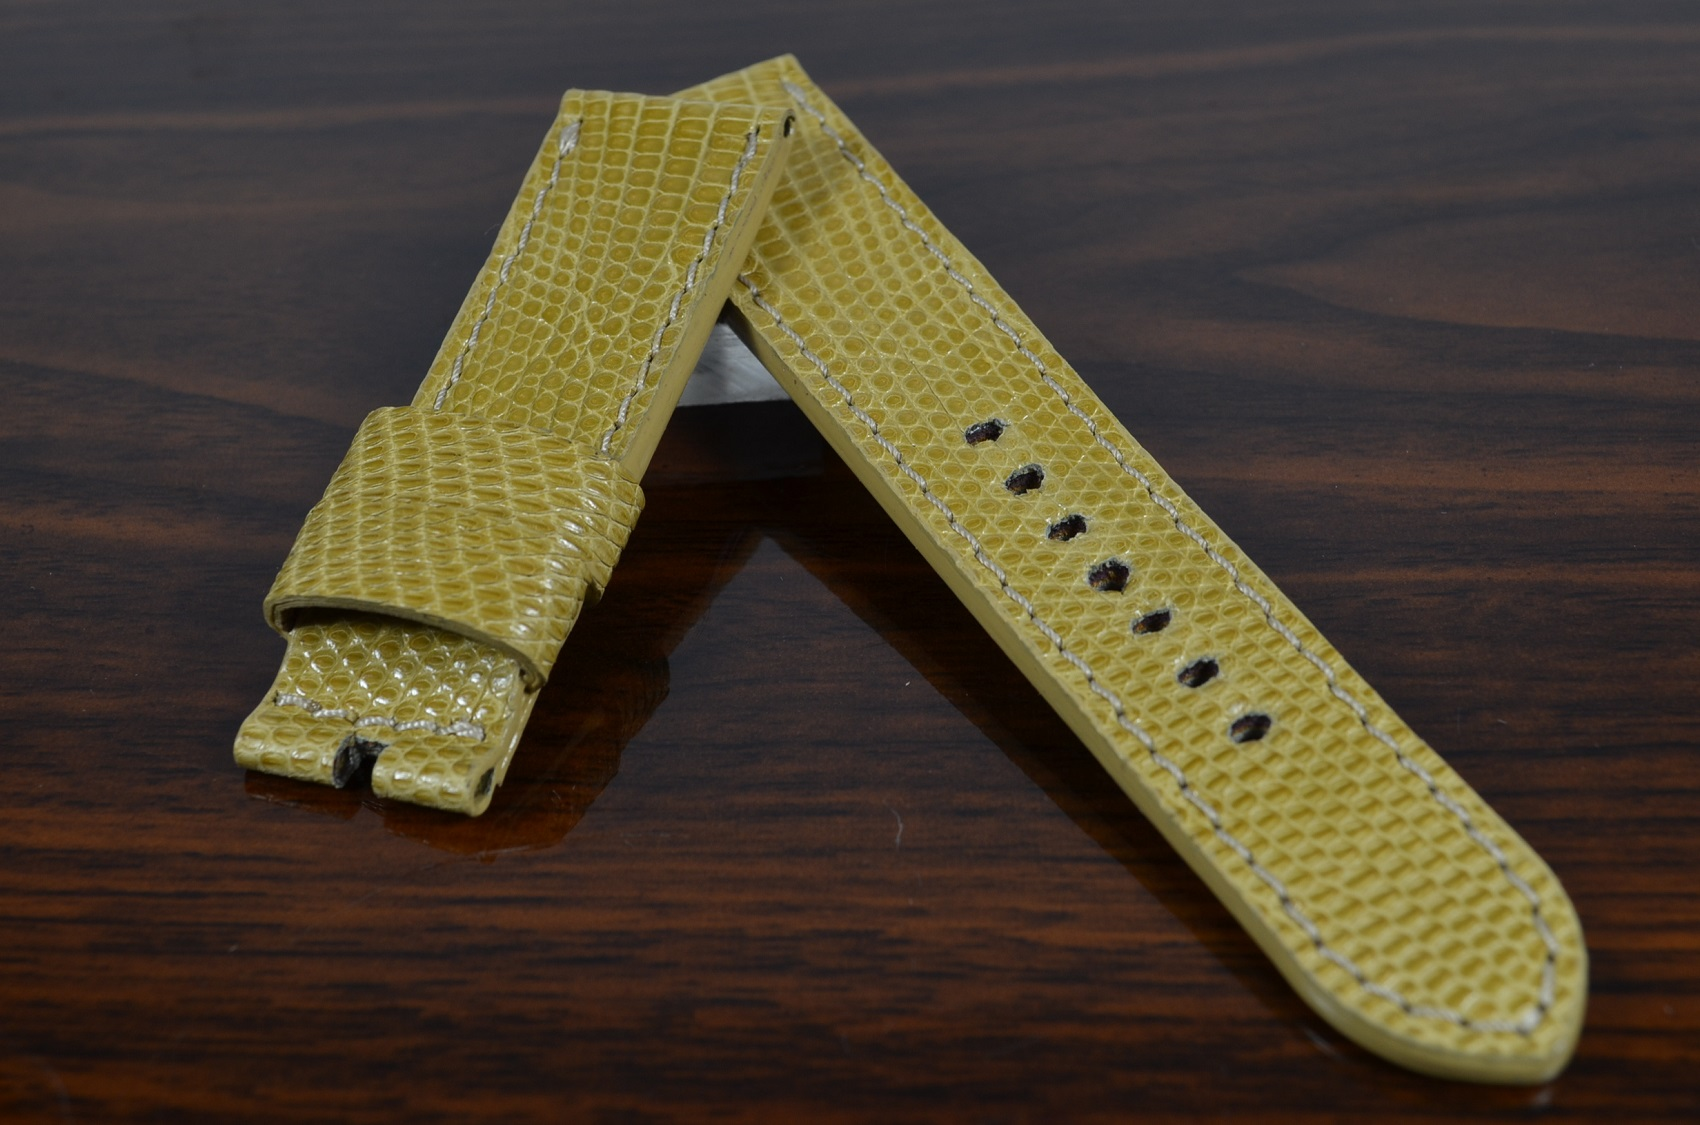 BEIGE SHINY is one of our hand crafted watch straps. Available in beige color, 3.5 - 4 mm thick.